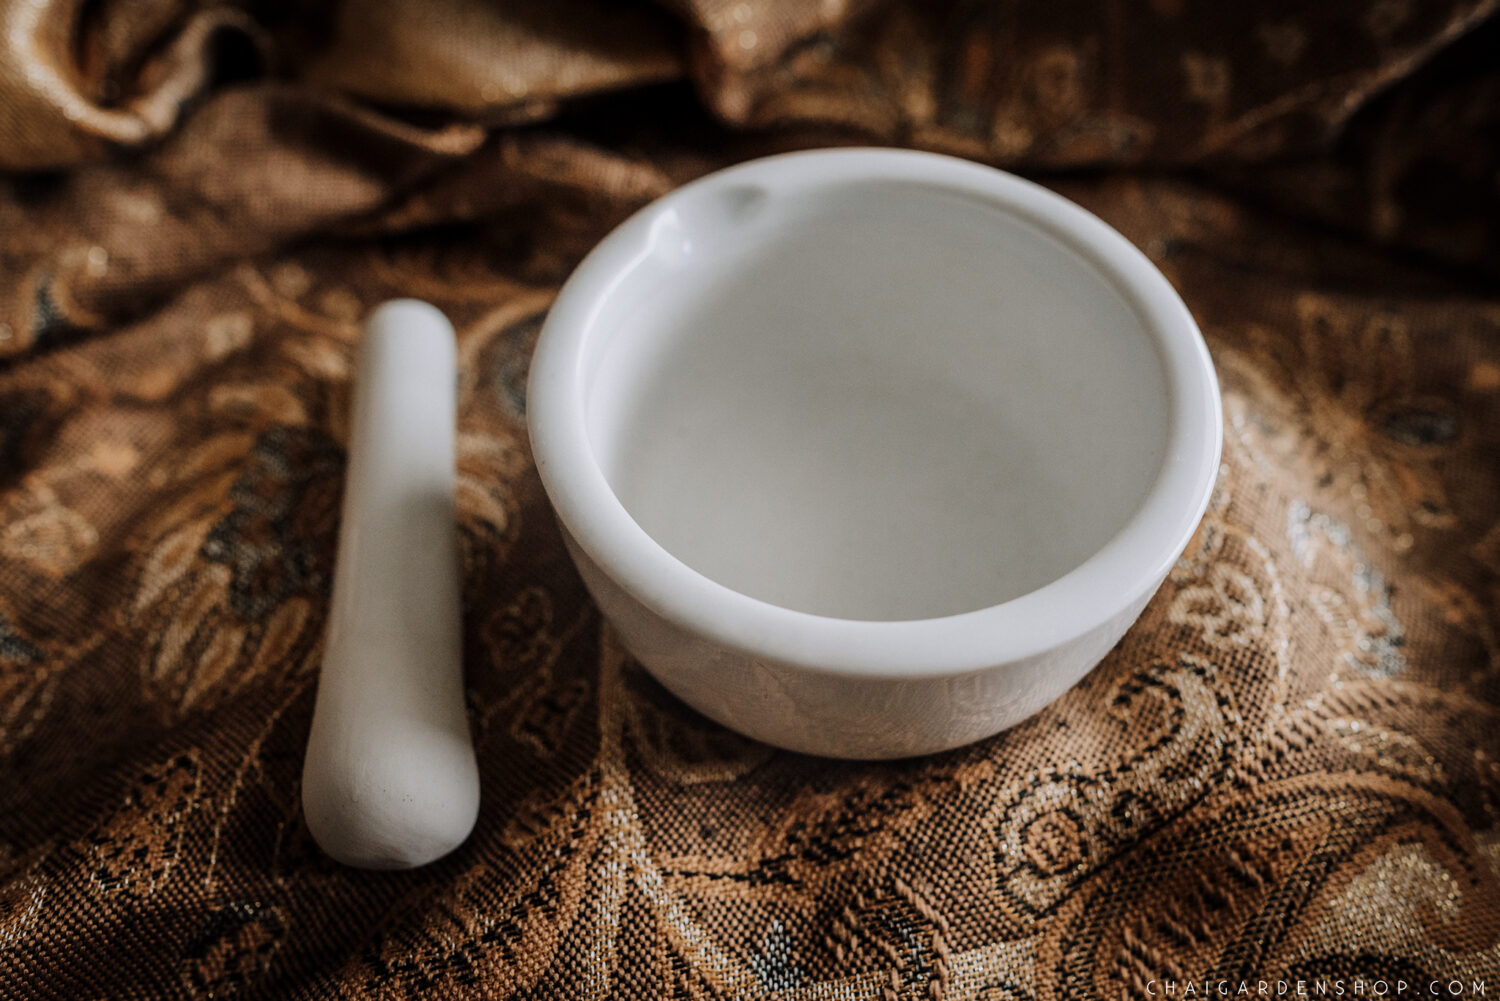 how to make chai, authentic chai recipe, chai floral recipe, pashmina food tea photography, tales of punjab, authentic organic chai, mortar and pestle chai